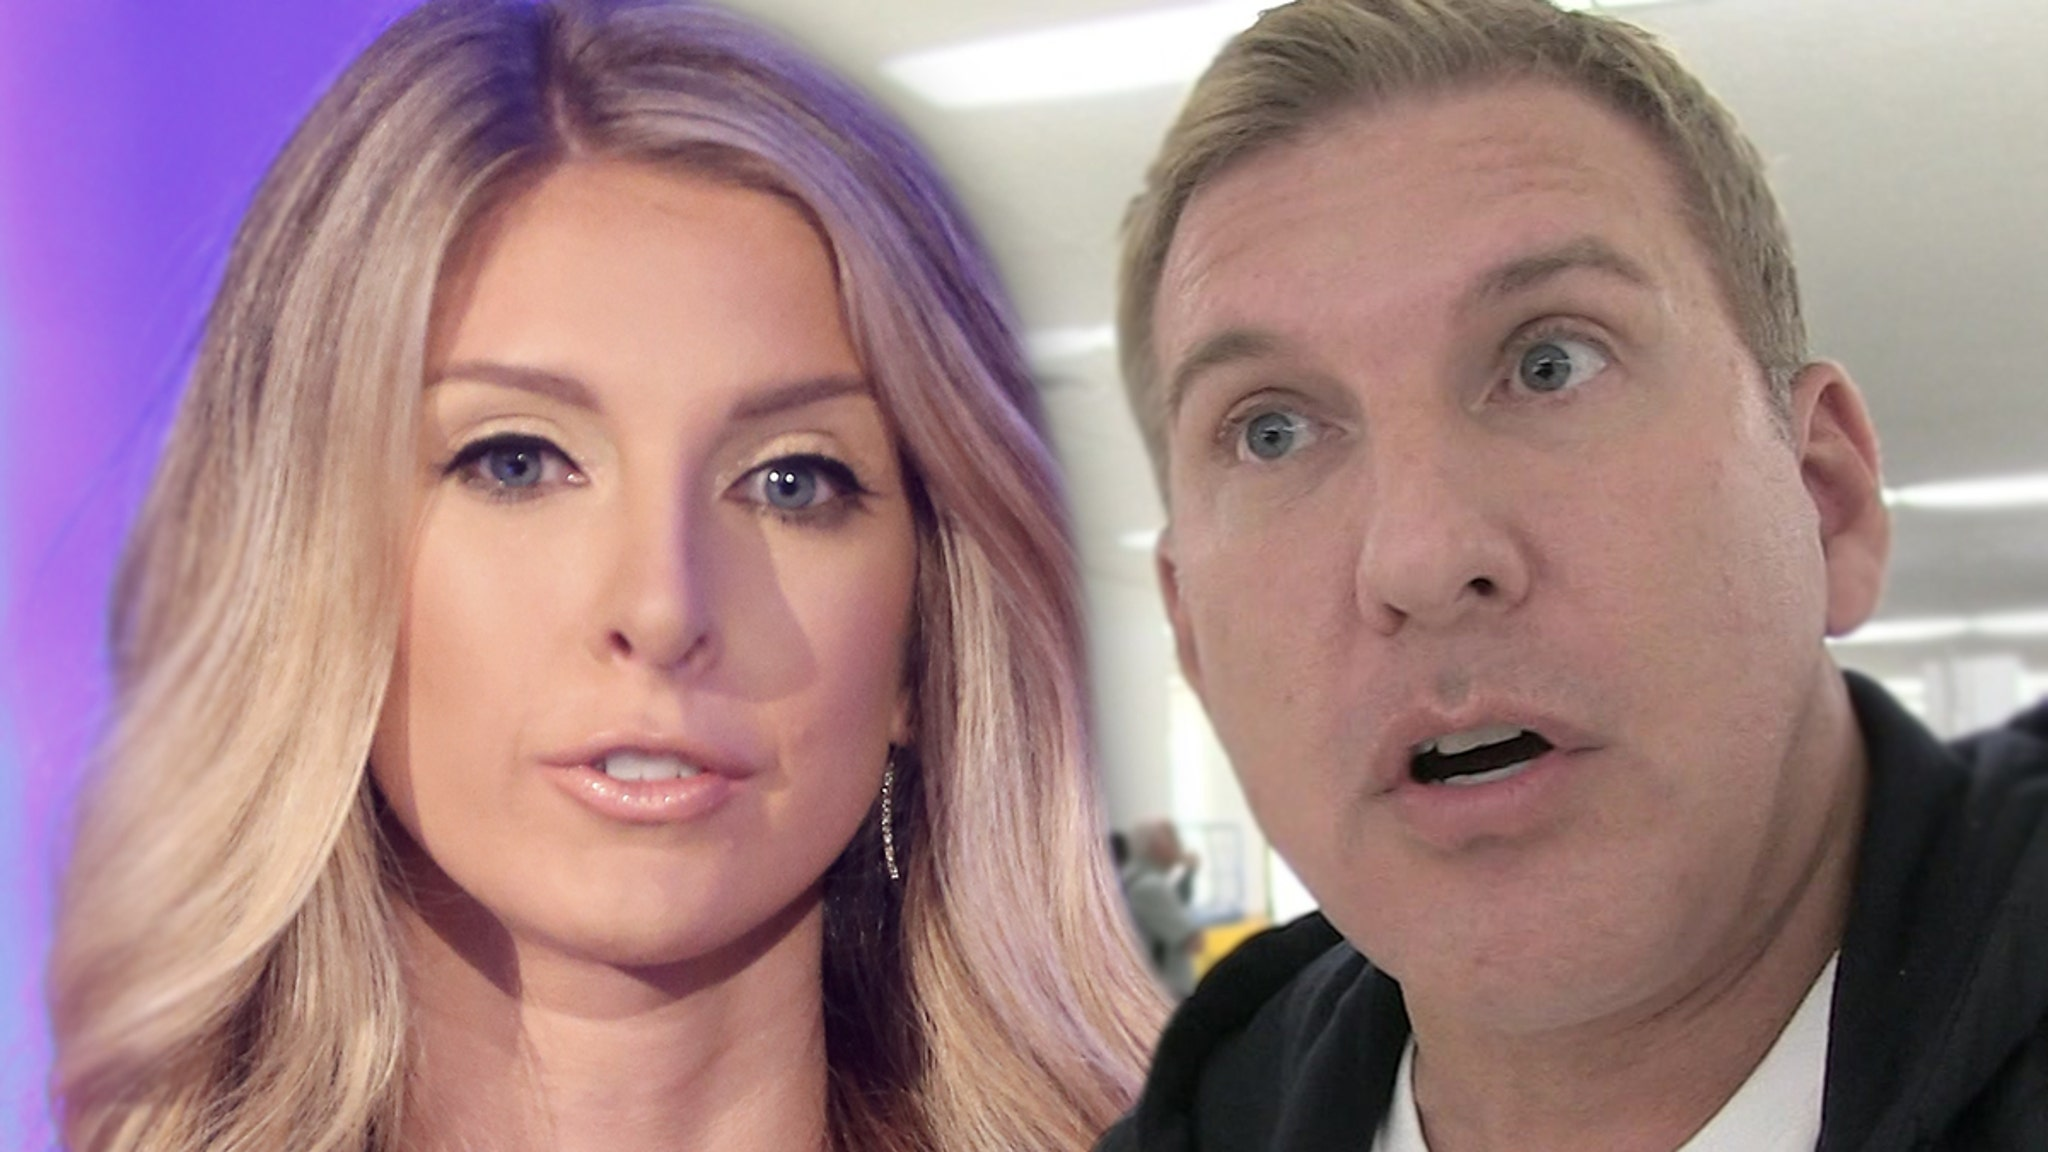 Todd Chrisley's Daughter Hopes to Make Peace One Day, But Not For TV